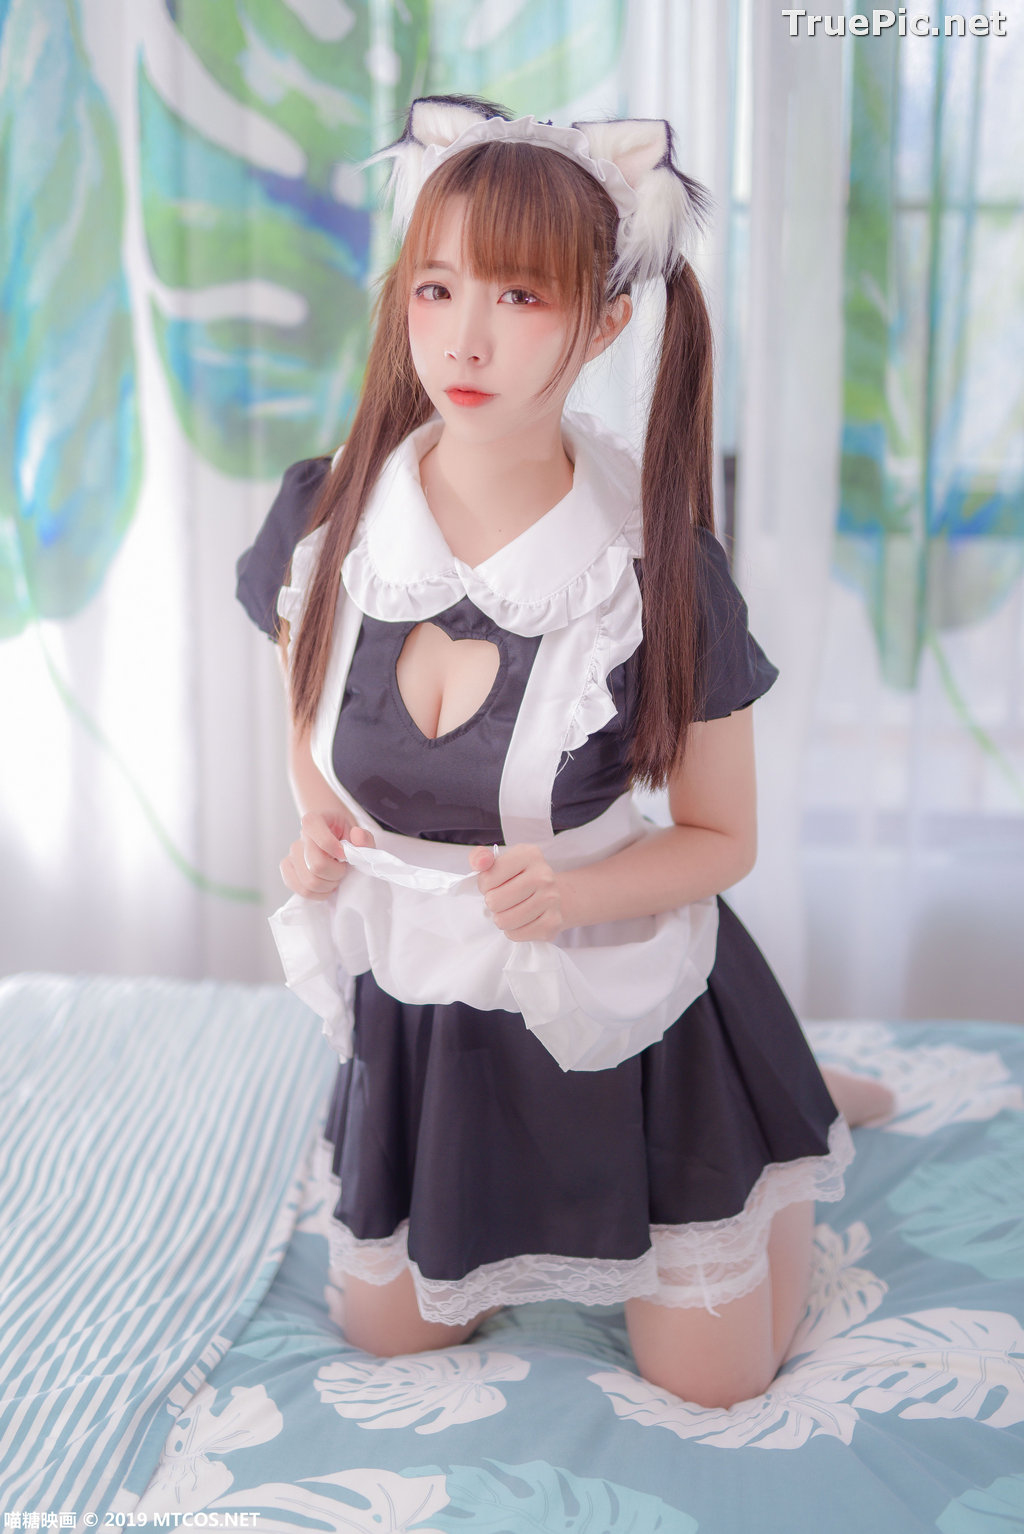 Image [MTCos] 喵糖映画 Vol.049 - Chinese Cute Model - Lovely Maid Cat - TruePic.net - Picture-8